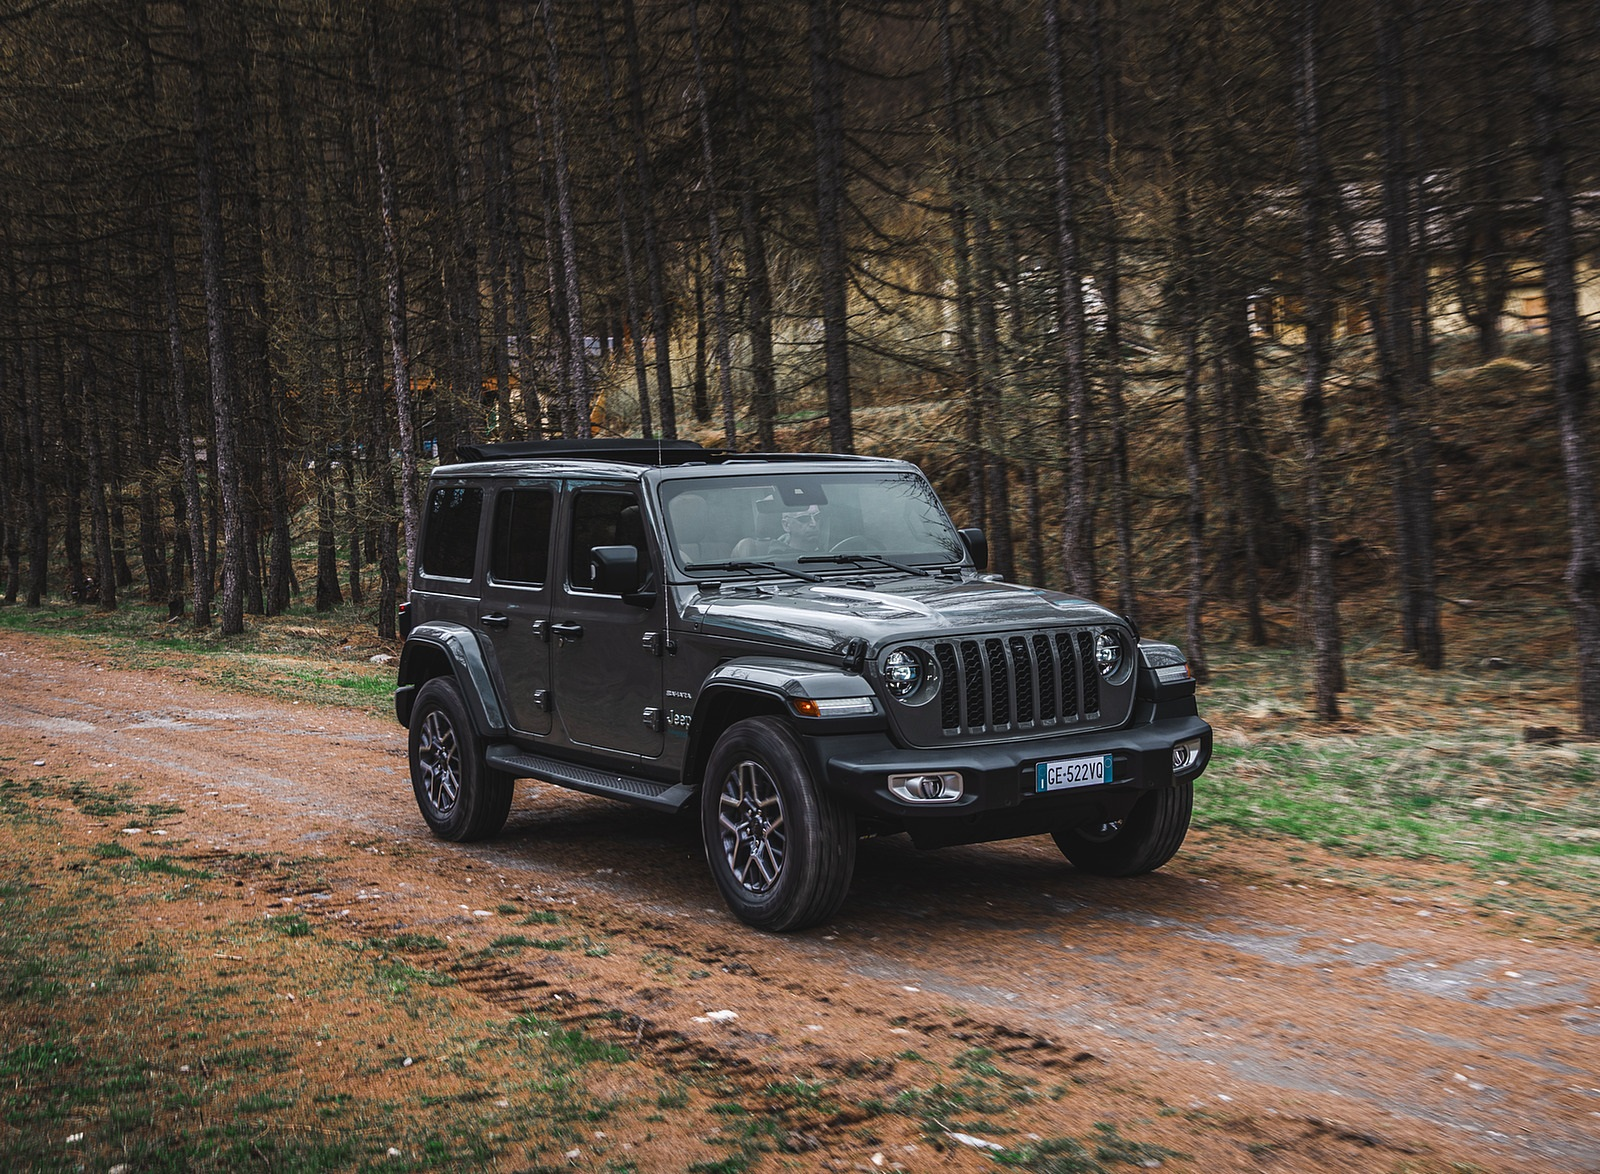 2021 Jeep Wrangler 4xe (Euro-Spec; Plug-In Hybrid) Front Three-Quarter Wallpapers (3)